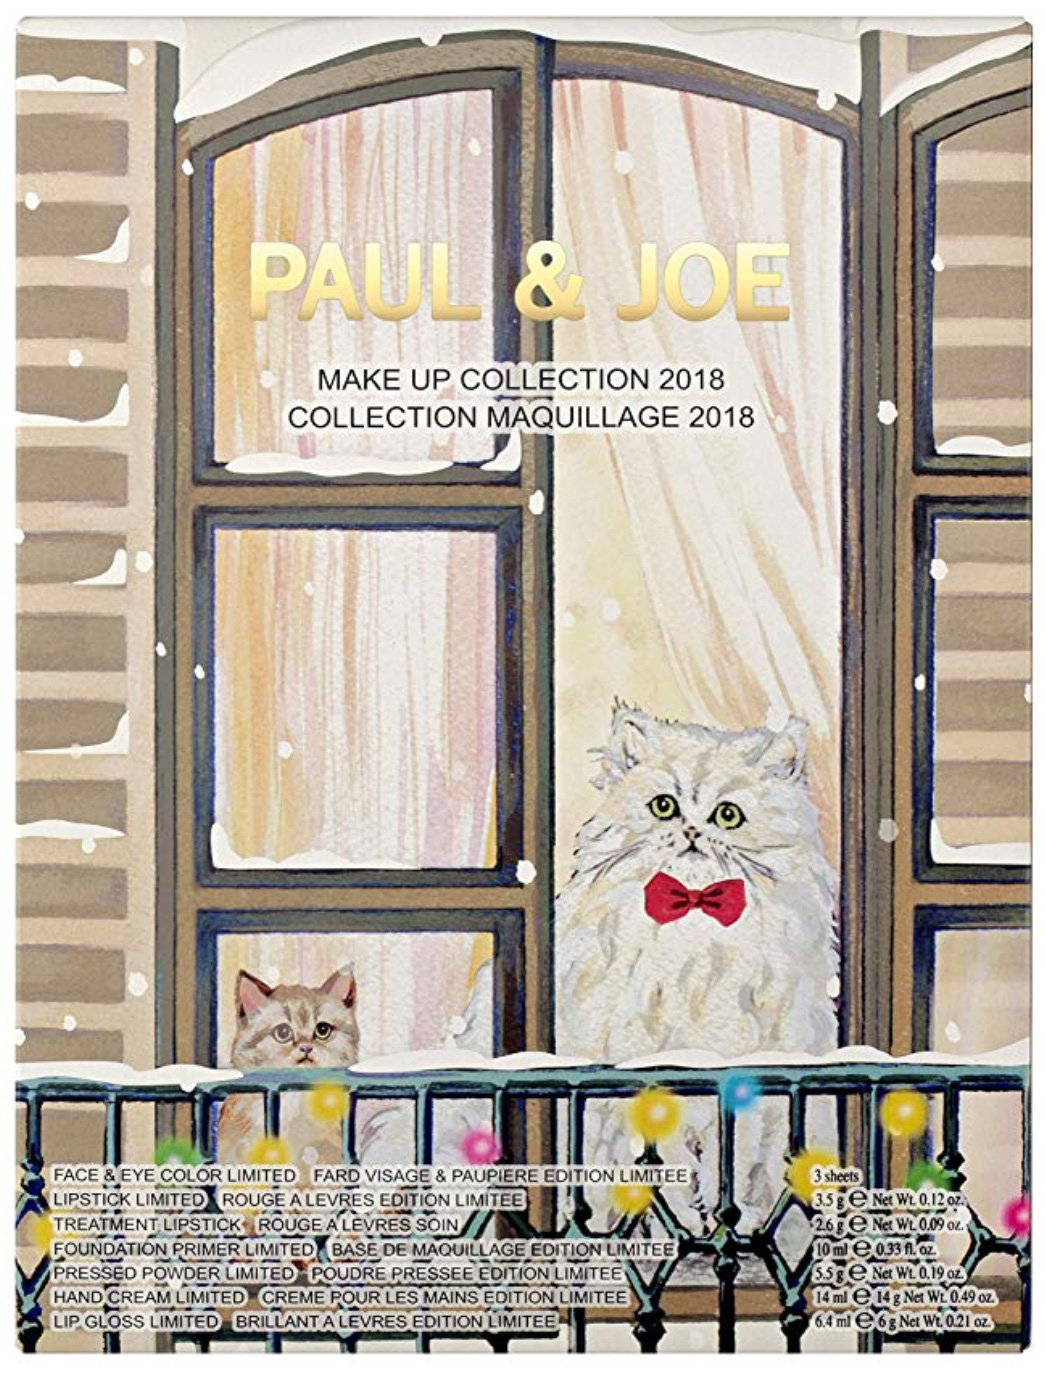 calendrier-avent-paul-joe-2018-maquillage-